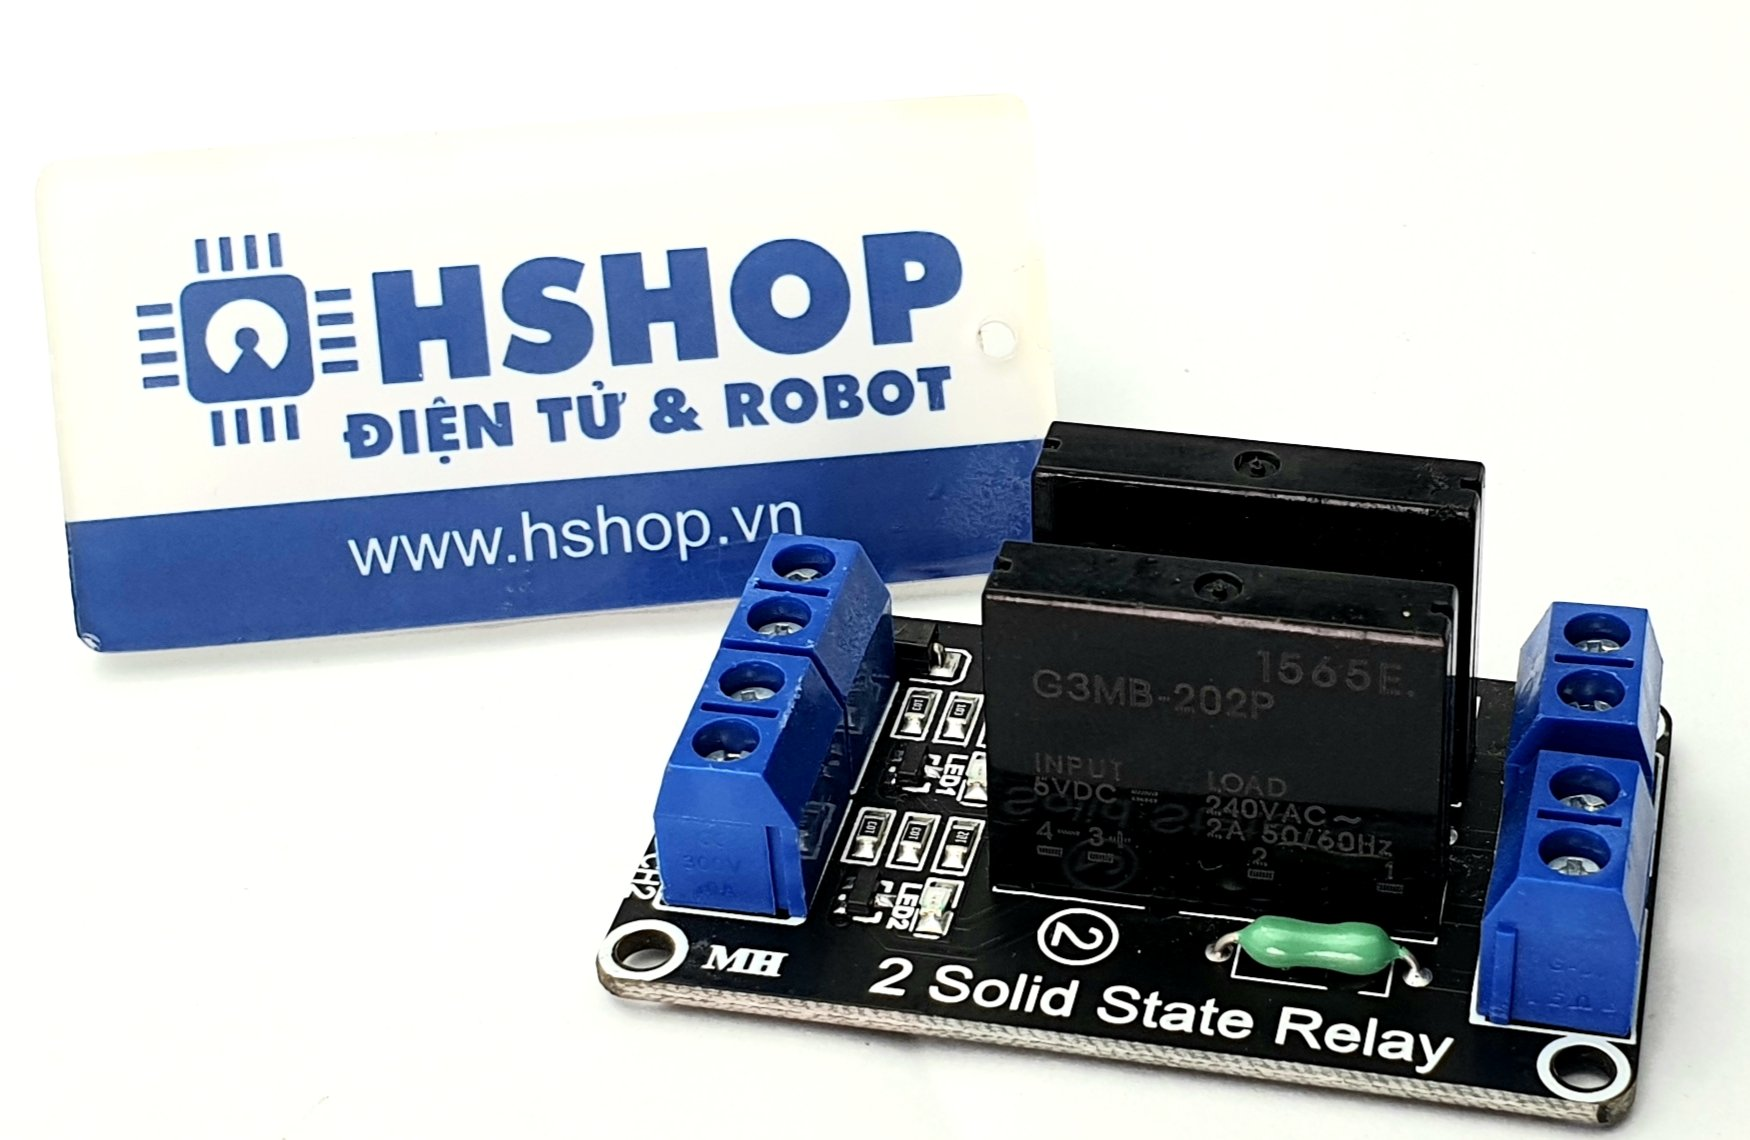 Mạch 2 Solid State Relay (SSR) 2A240VAC